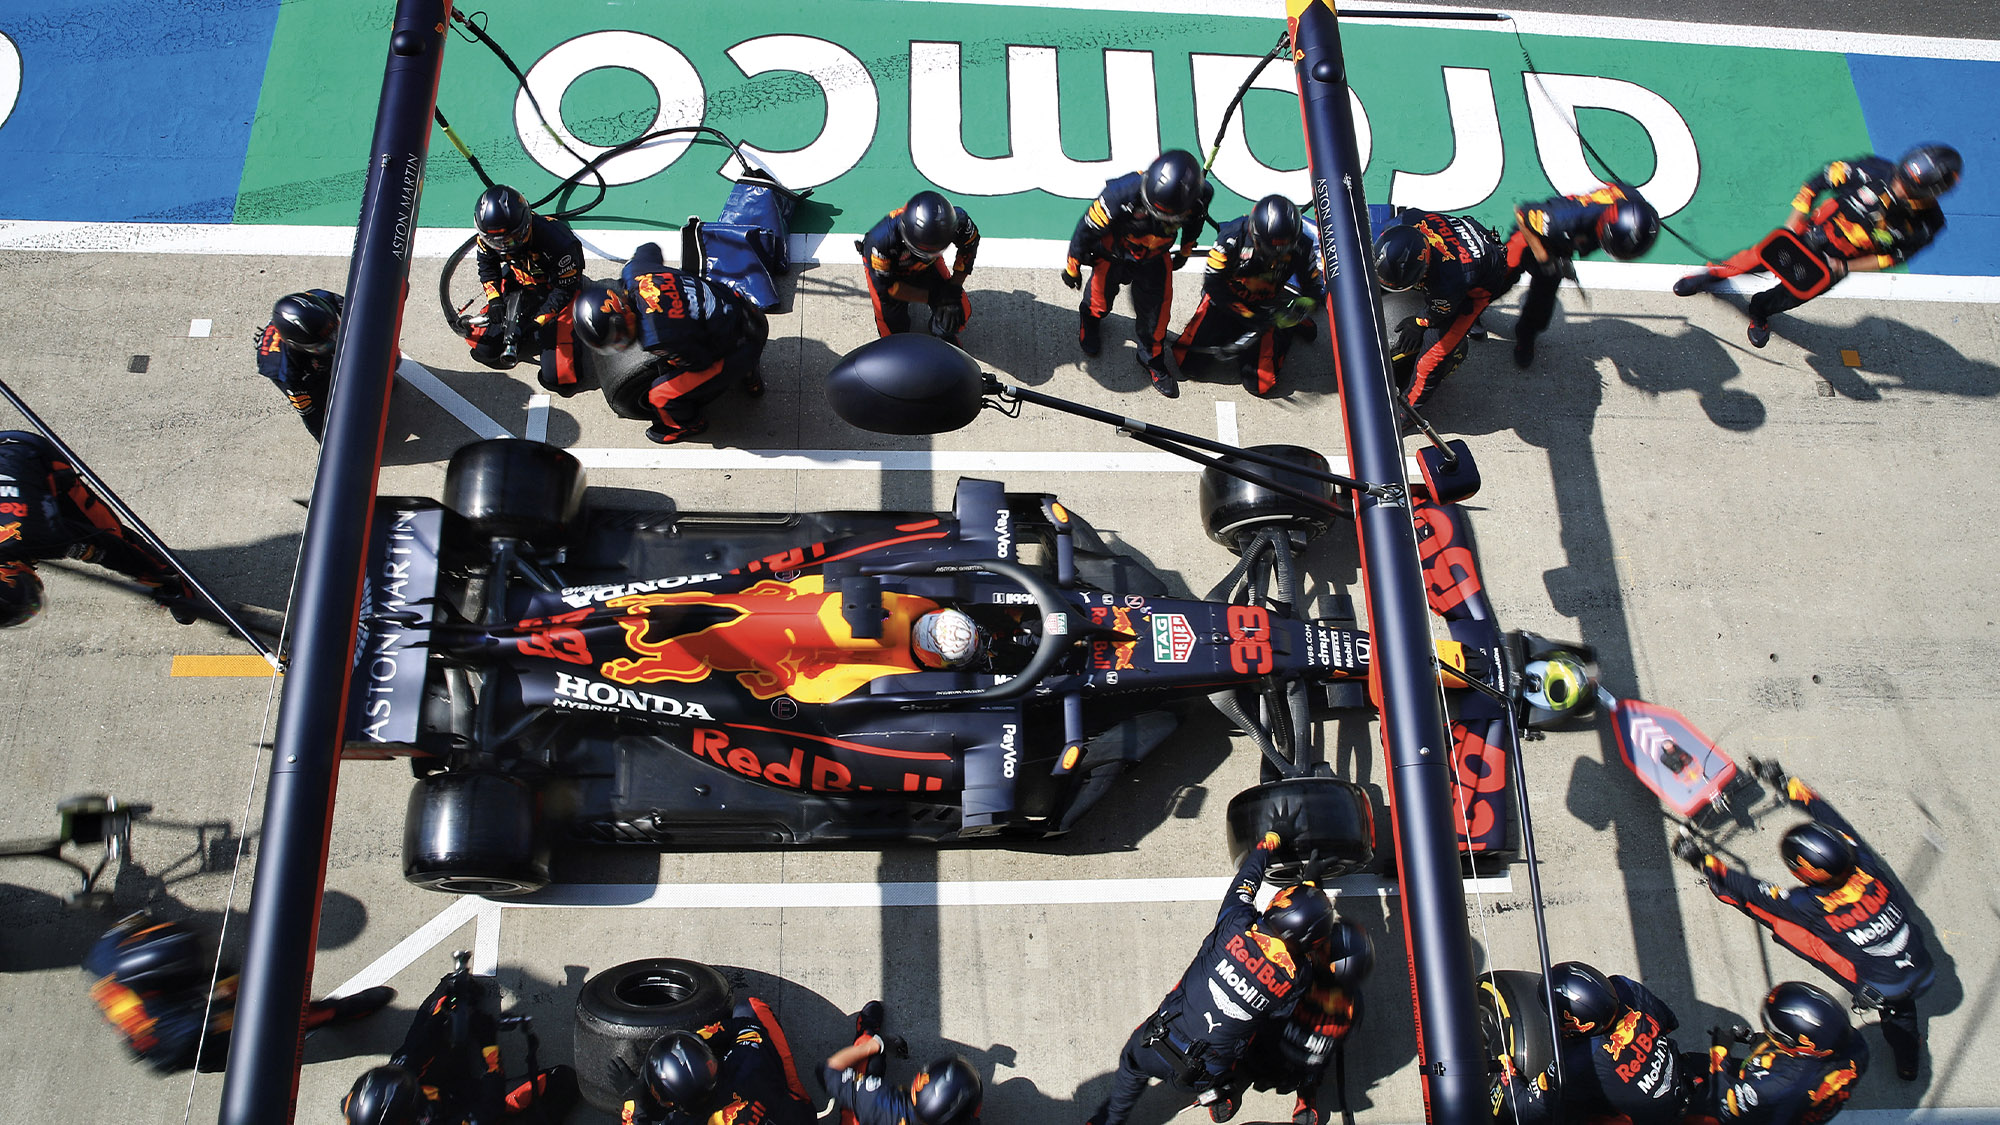 Max Verstappen's Red Bull mid-pitstop during the 2020 F1 British Grand Prix at Silverstone